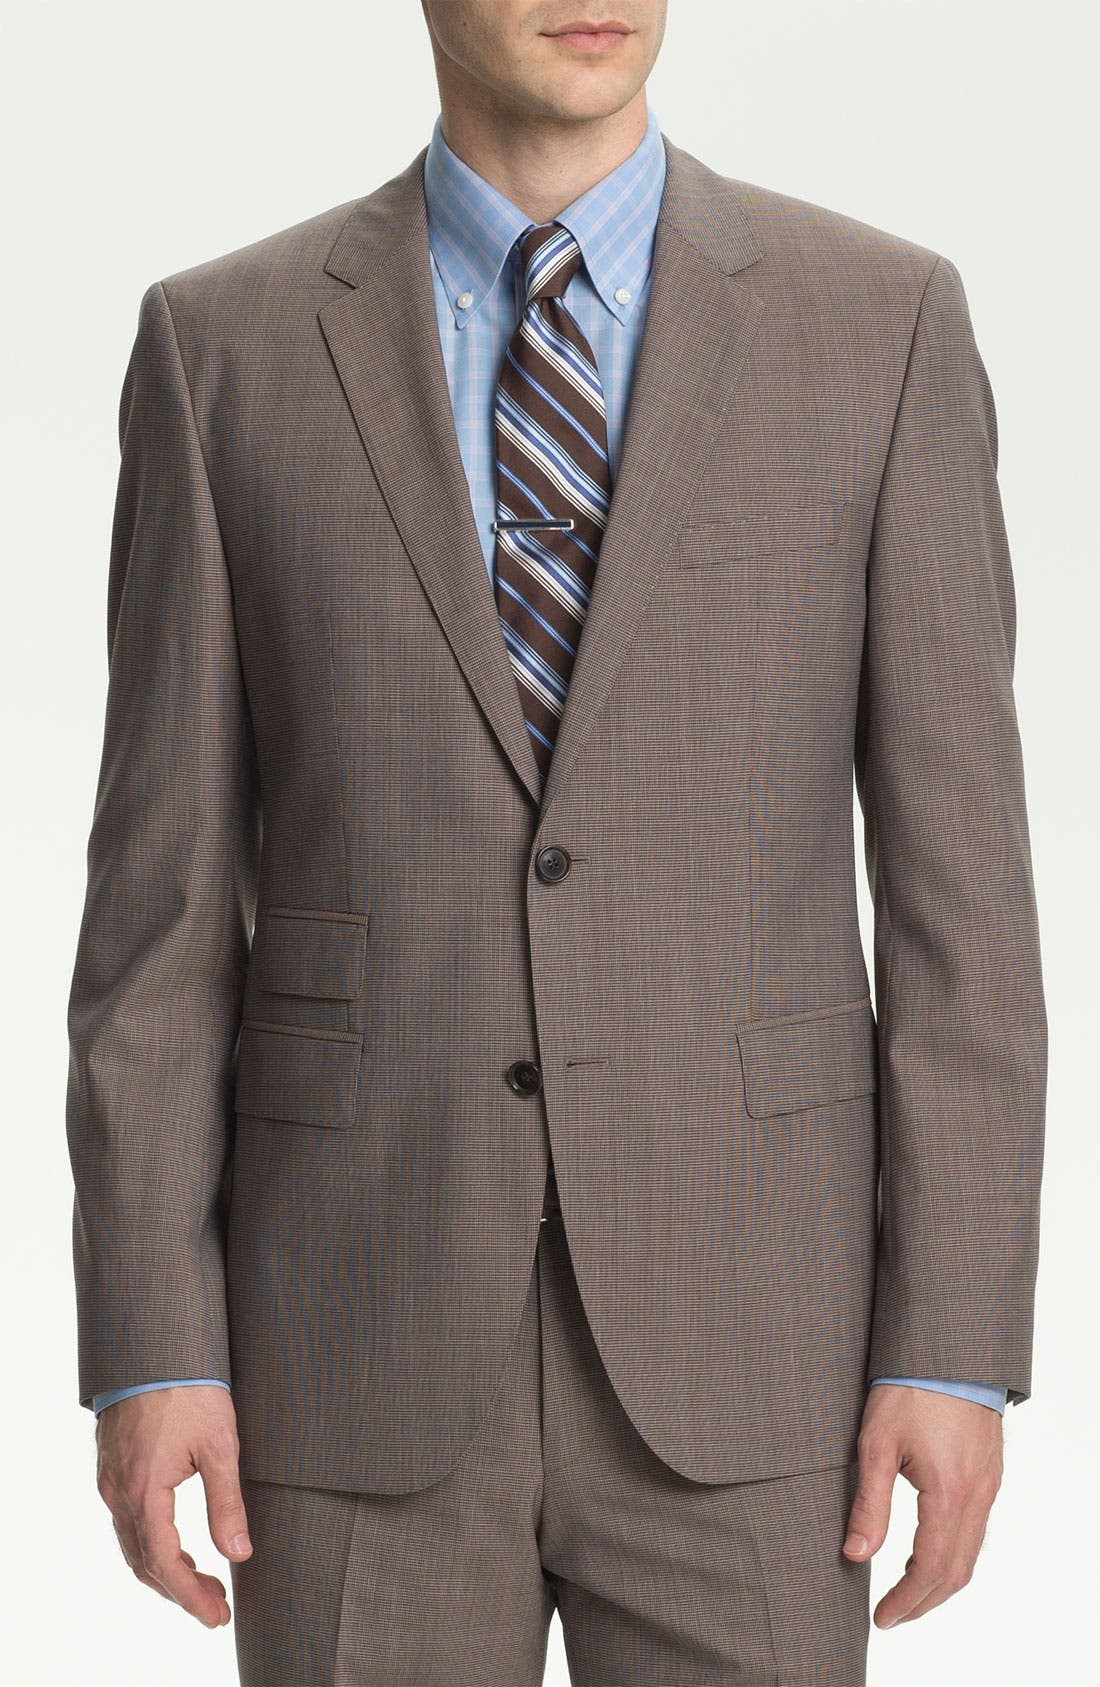 Alternate Image 1 Selected - BOSS HUGO BOSS 'The Sweet/Sharp' Trim Fit Houndstooth Suit